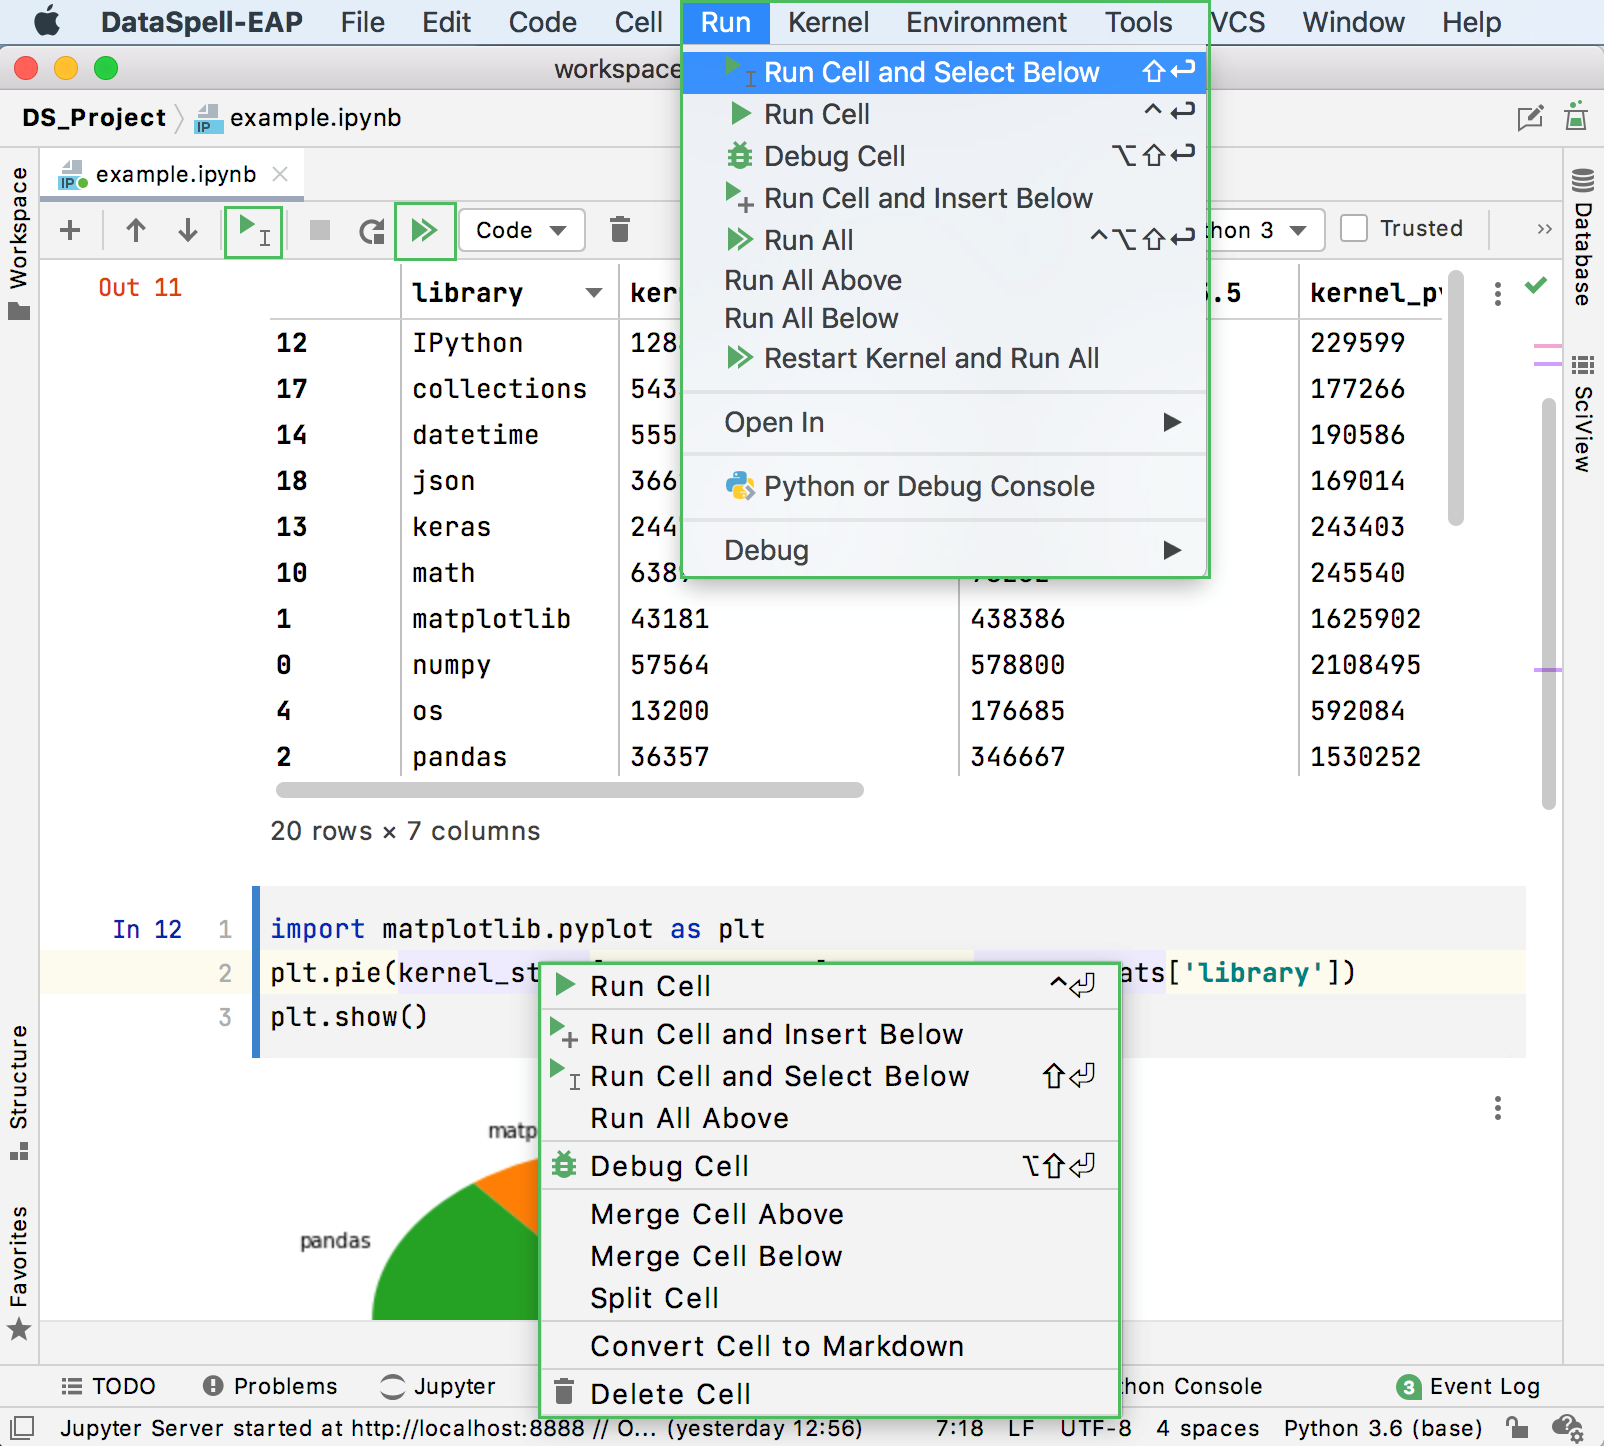 How to execute code cells in PyCharm